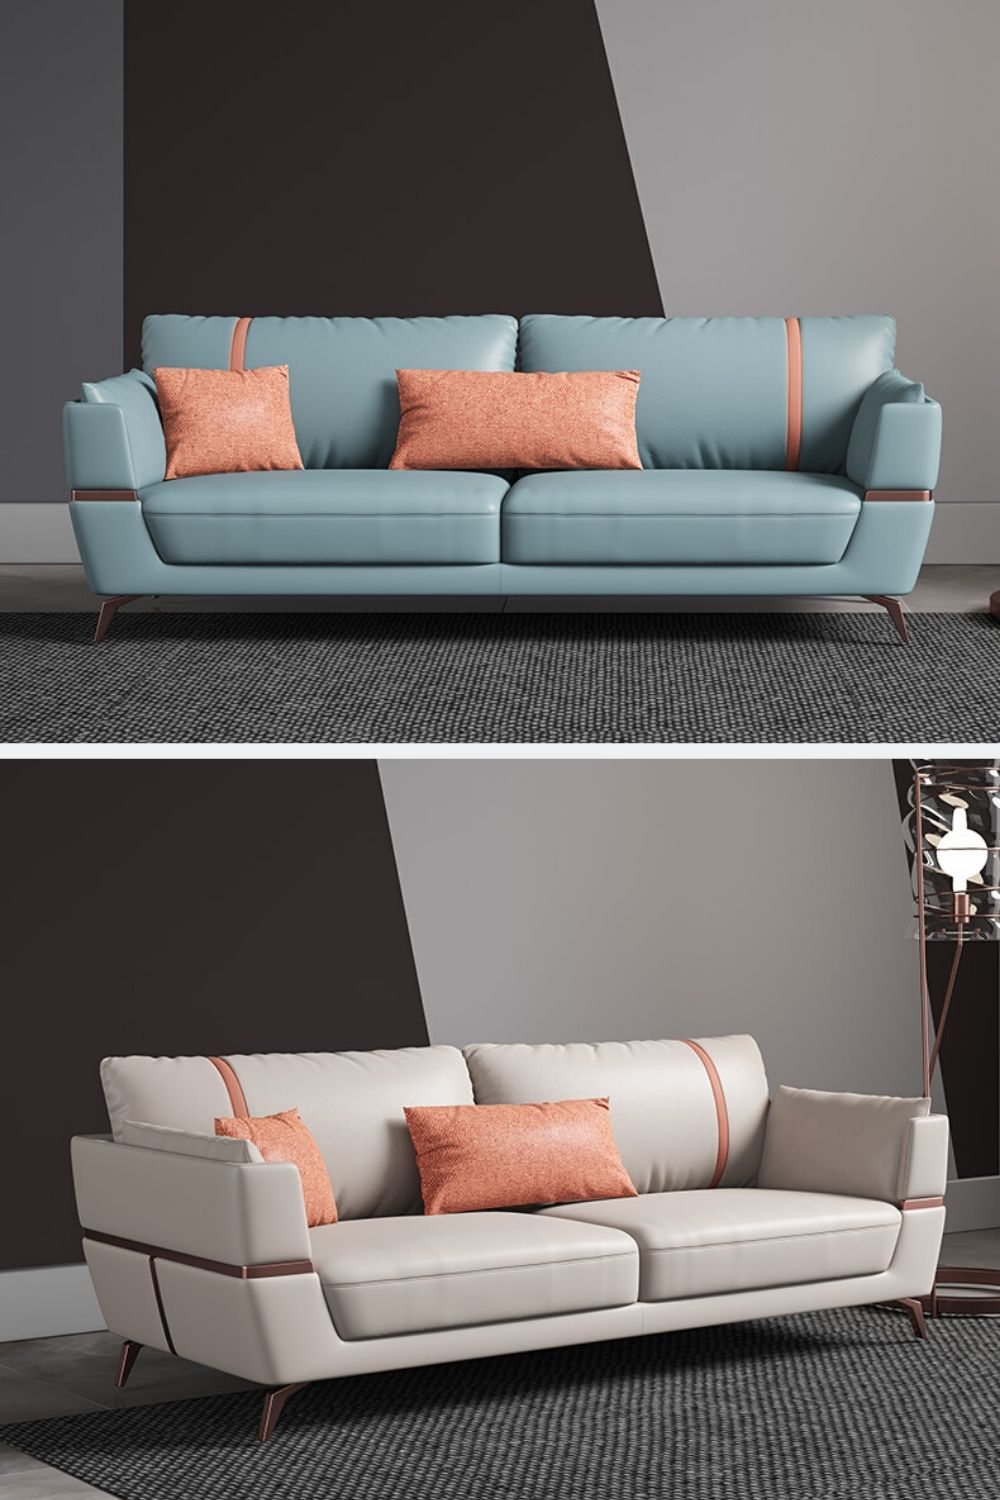 Small Sofa Set Designs Modern In 2020 Bed Furniture Design Sofa Set Designs Small Sofa Set Designs